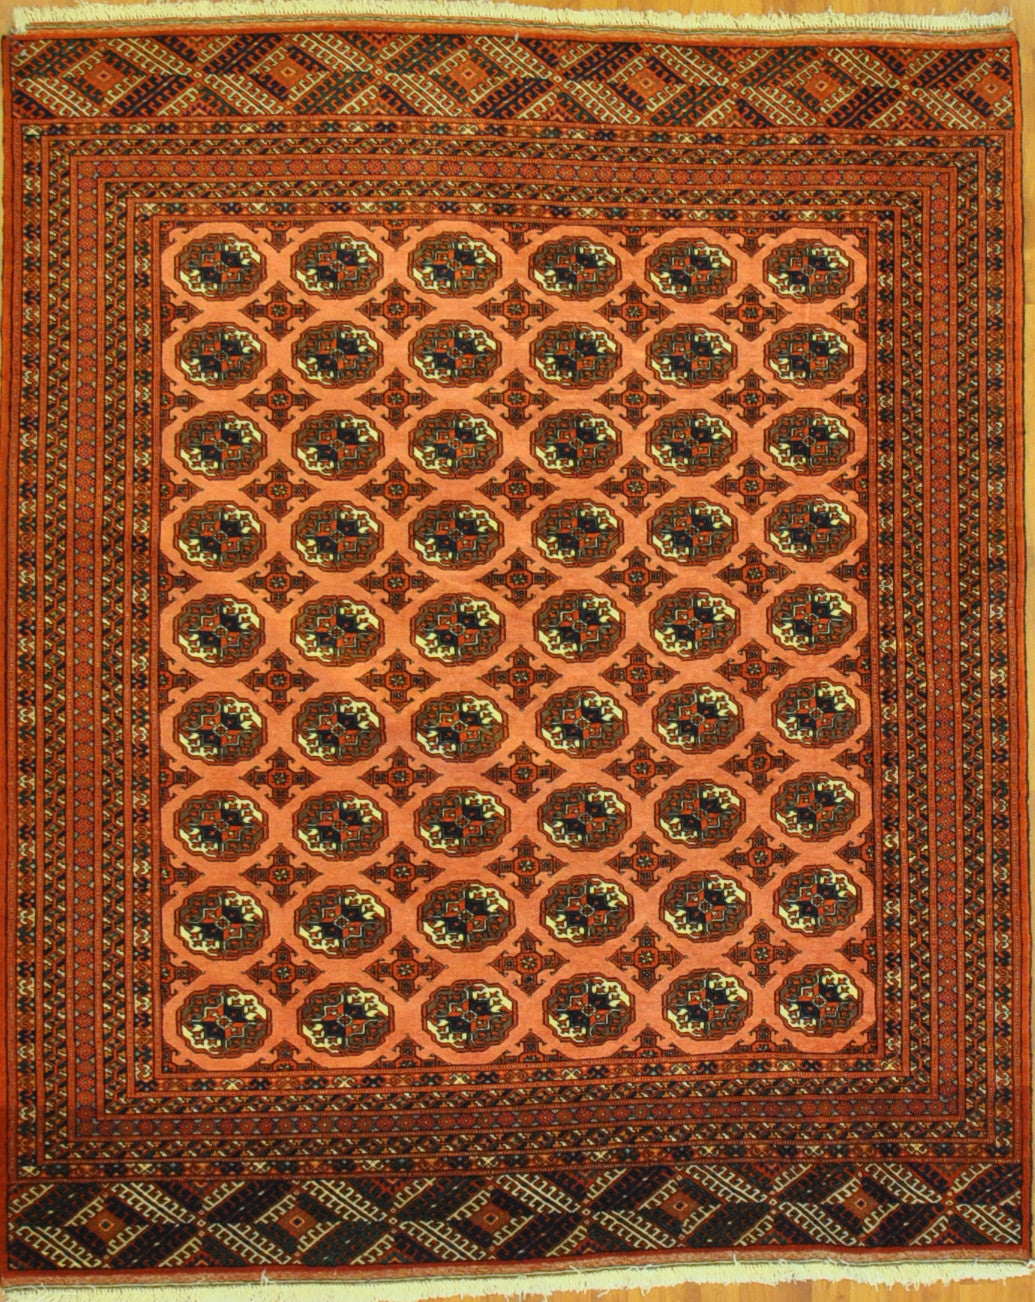 6.0x7.0 persian turkaman #20083